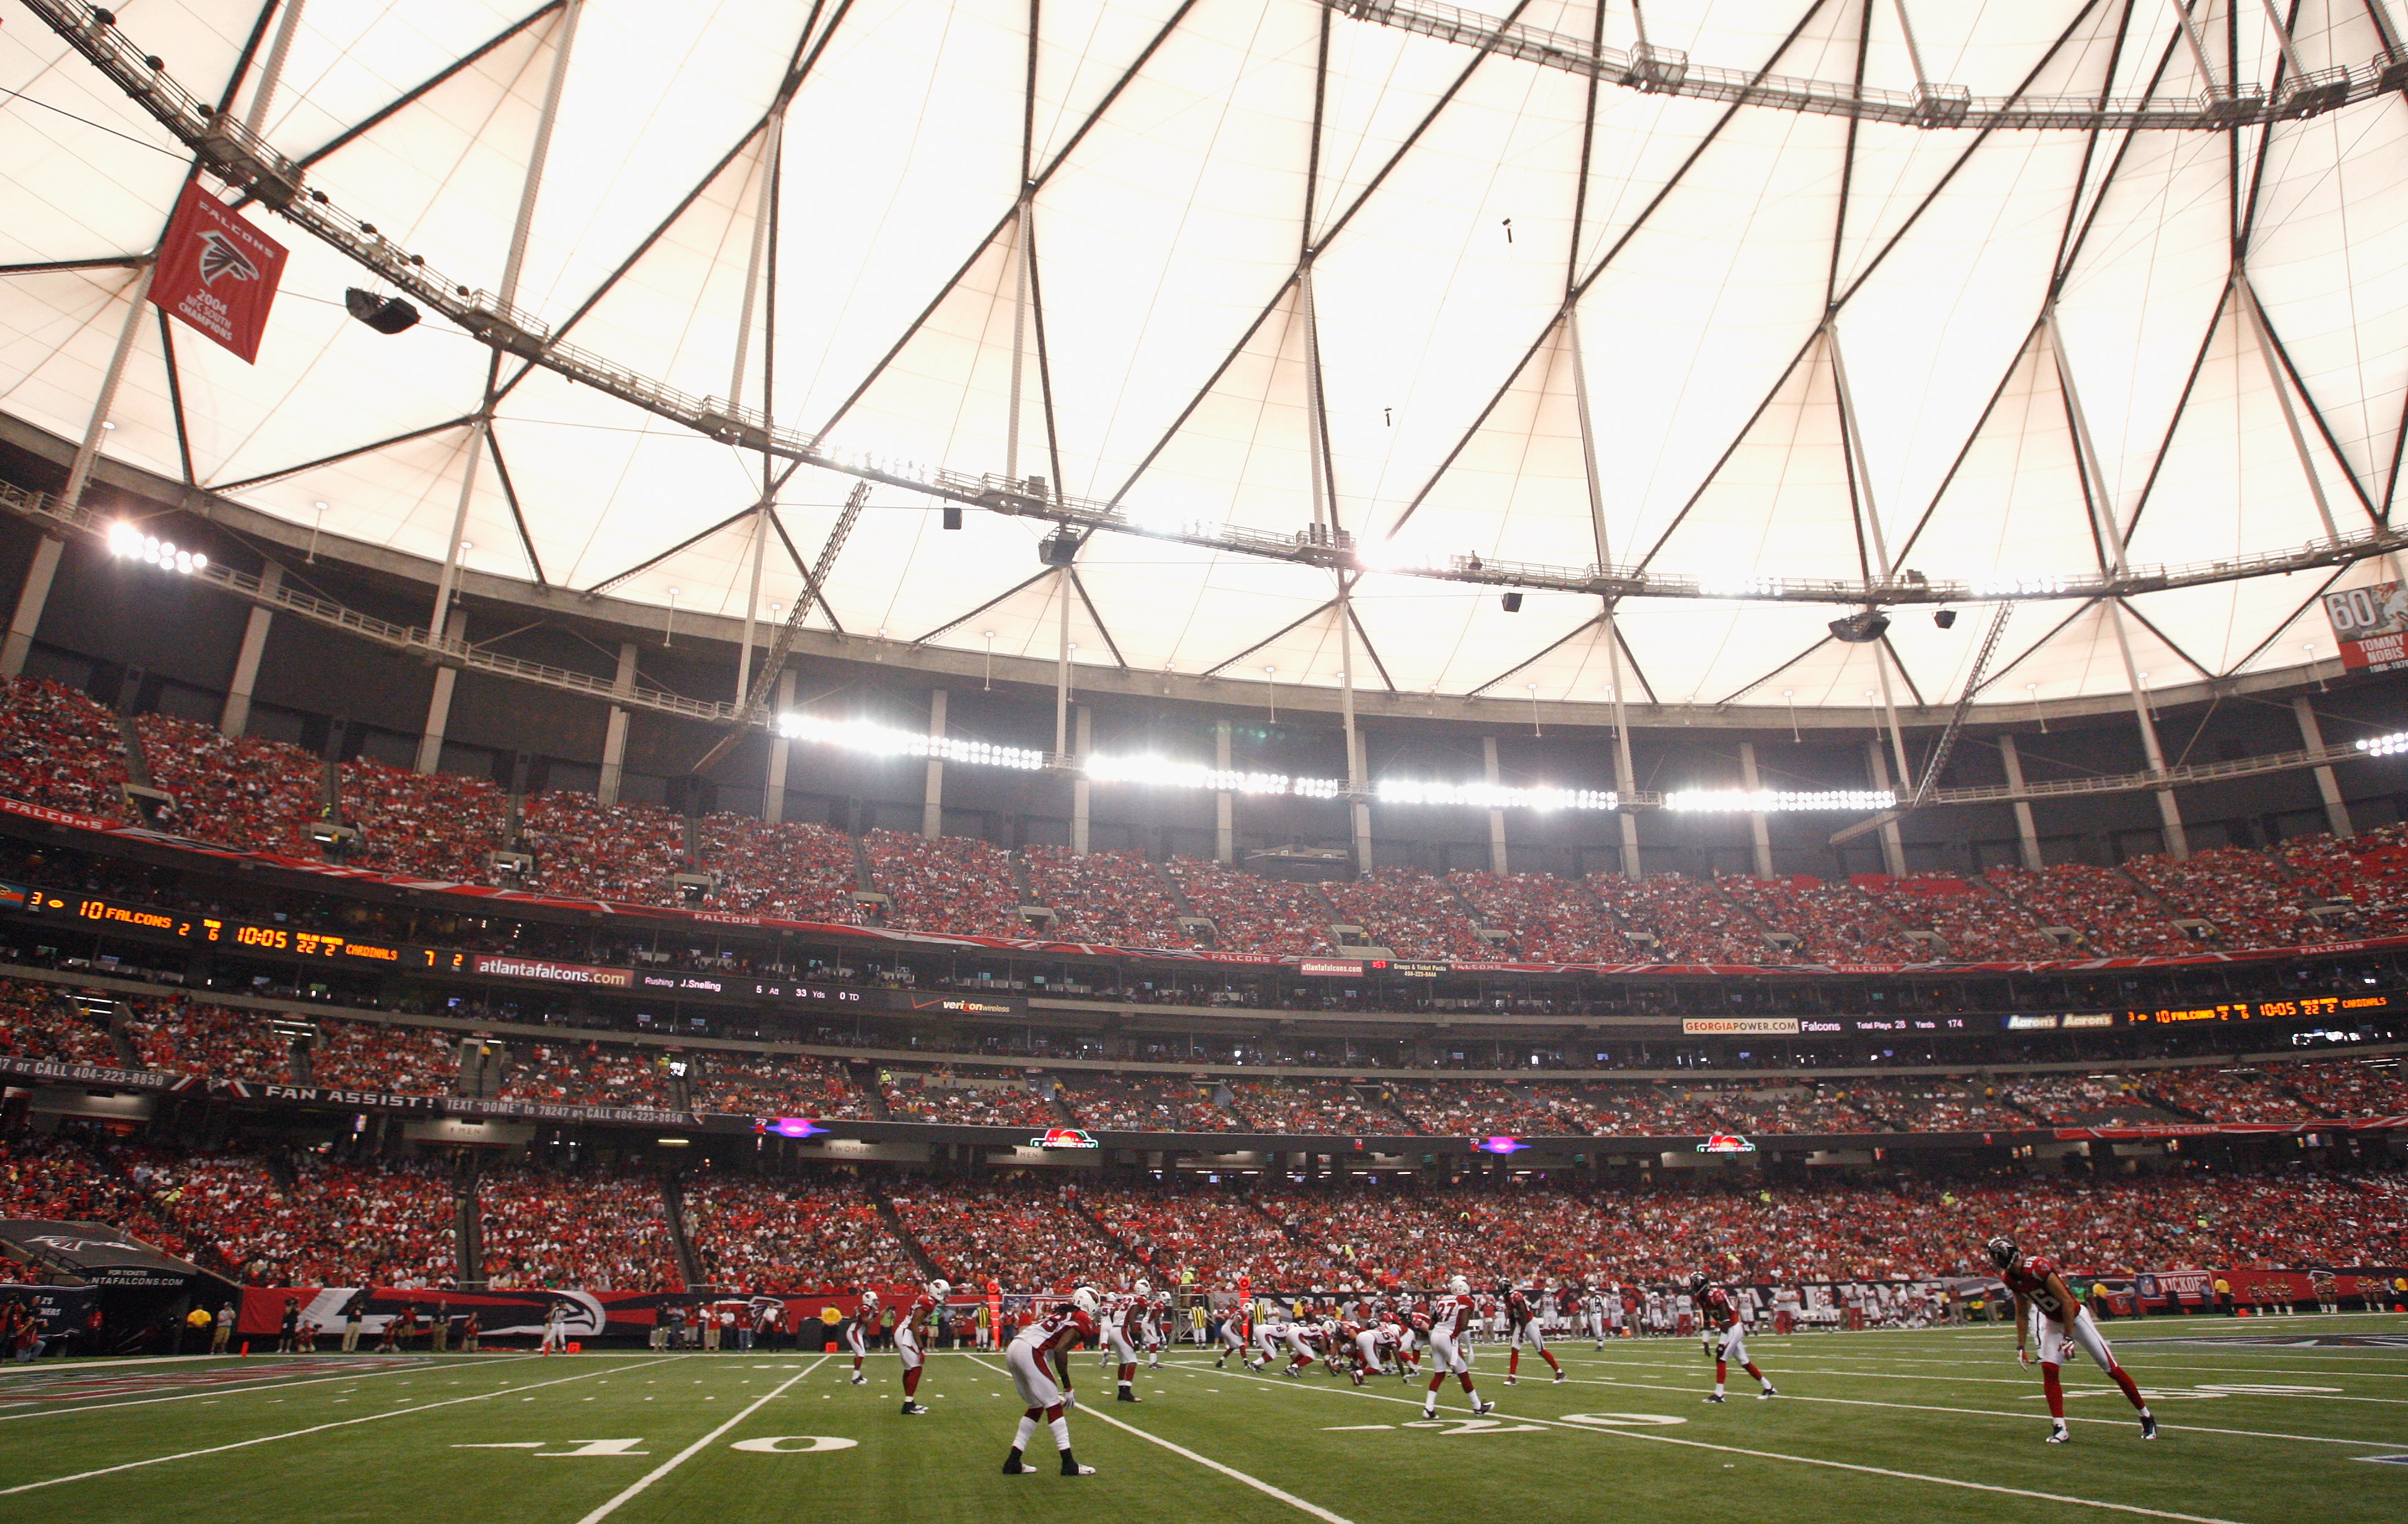 ATLANTA - SEPTEMBER 19:  The offense of the Atlanta Falcons lines up against the defense of the Arizona Cardinals at Georgia Dome on September 19, 2010 in Atlanta, Georgia.  (Photo by Kevin C. Cox/Getty Images)